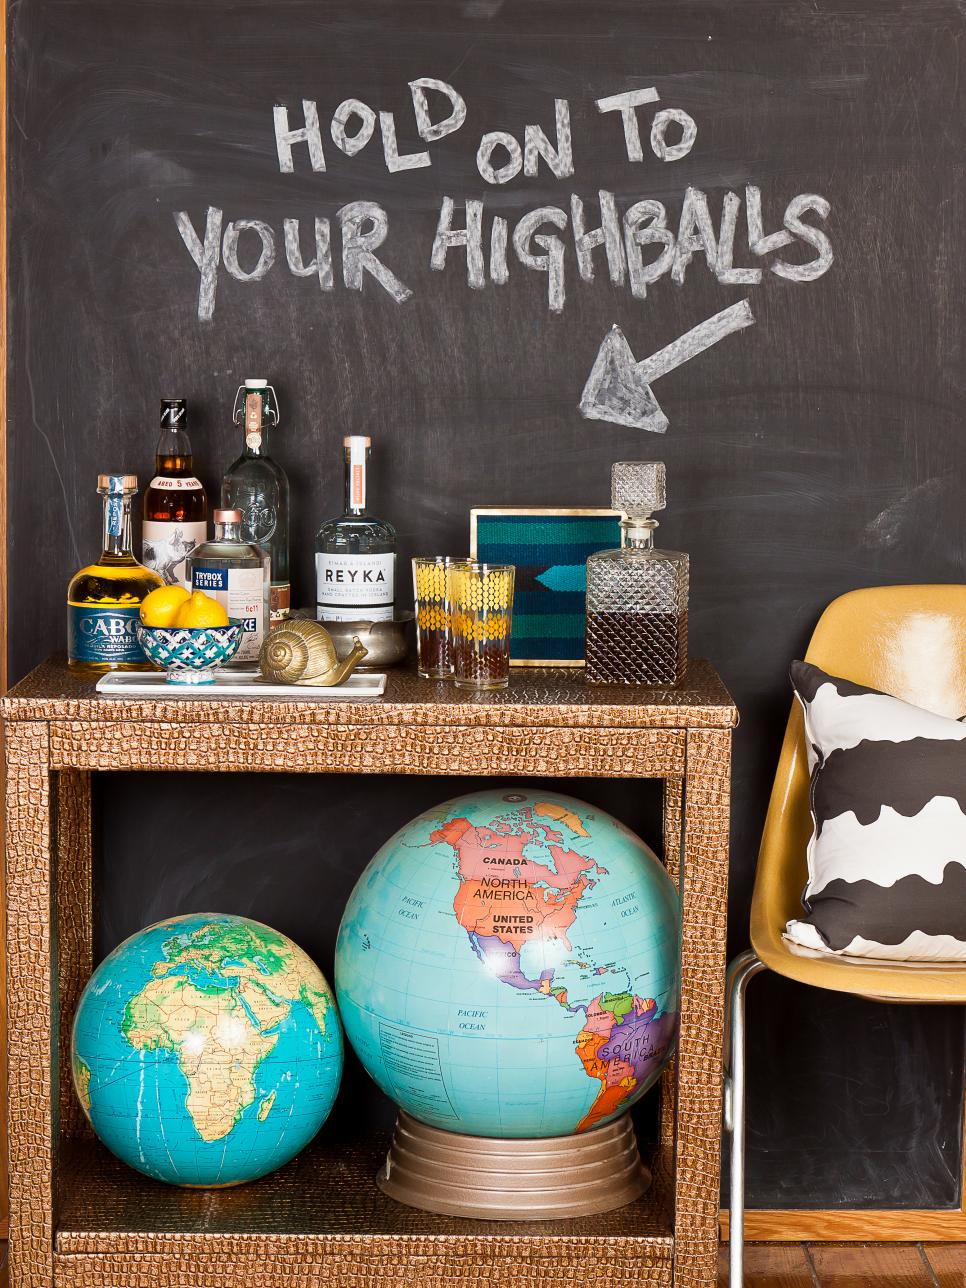 chalkboard paint ideas and projects hgtv - Chalkboard Designs Ideas